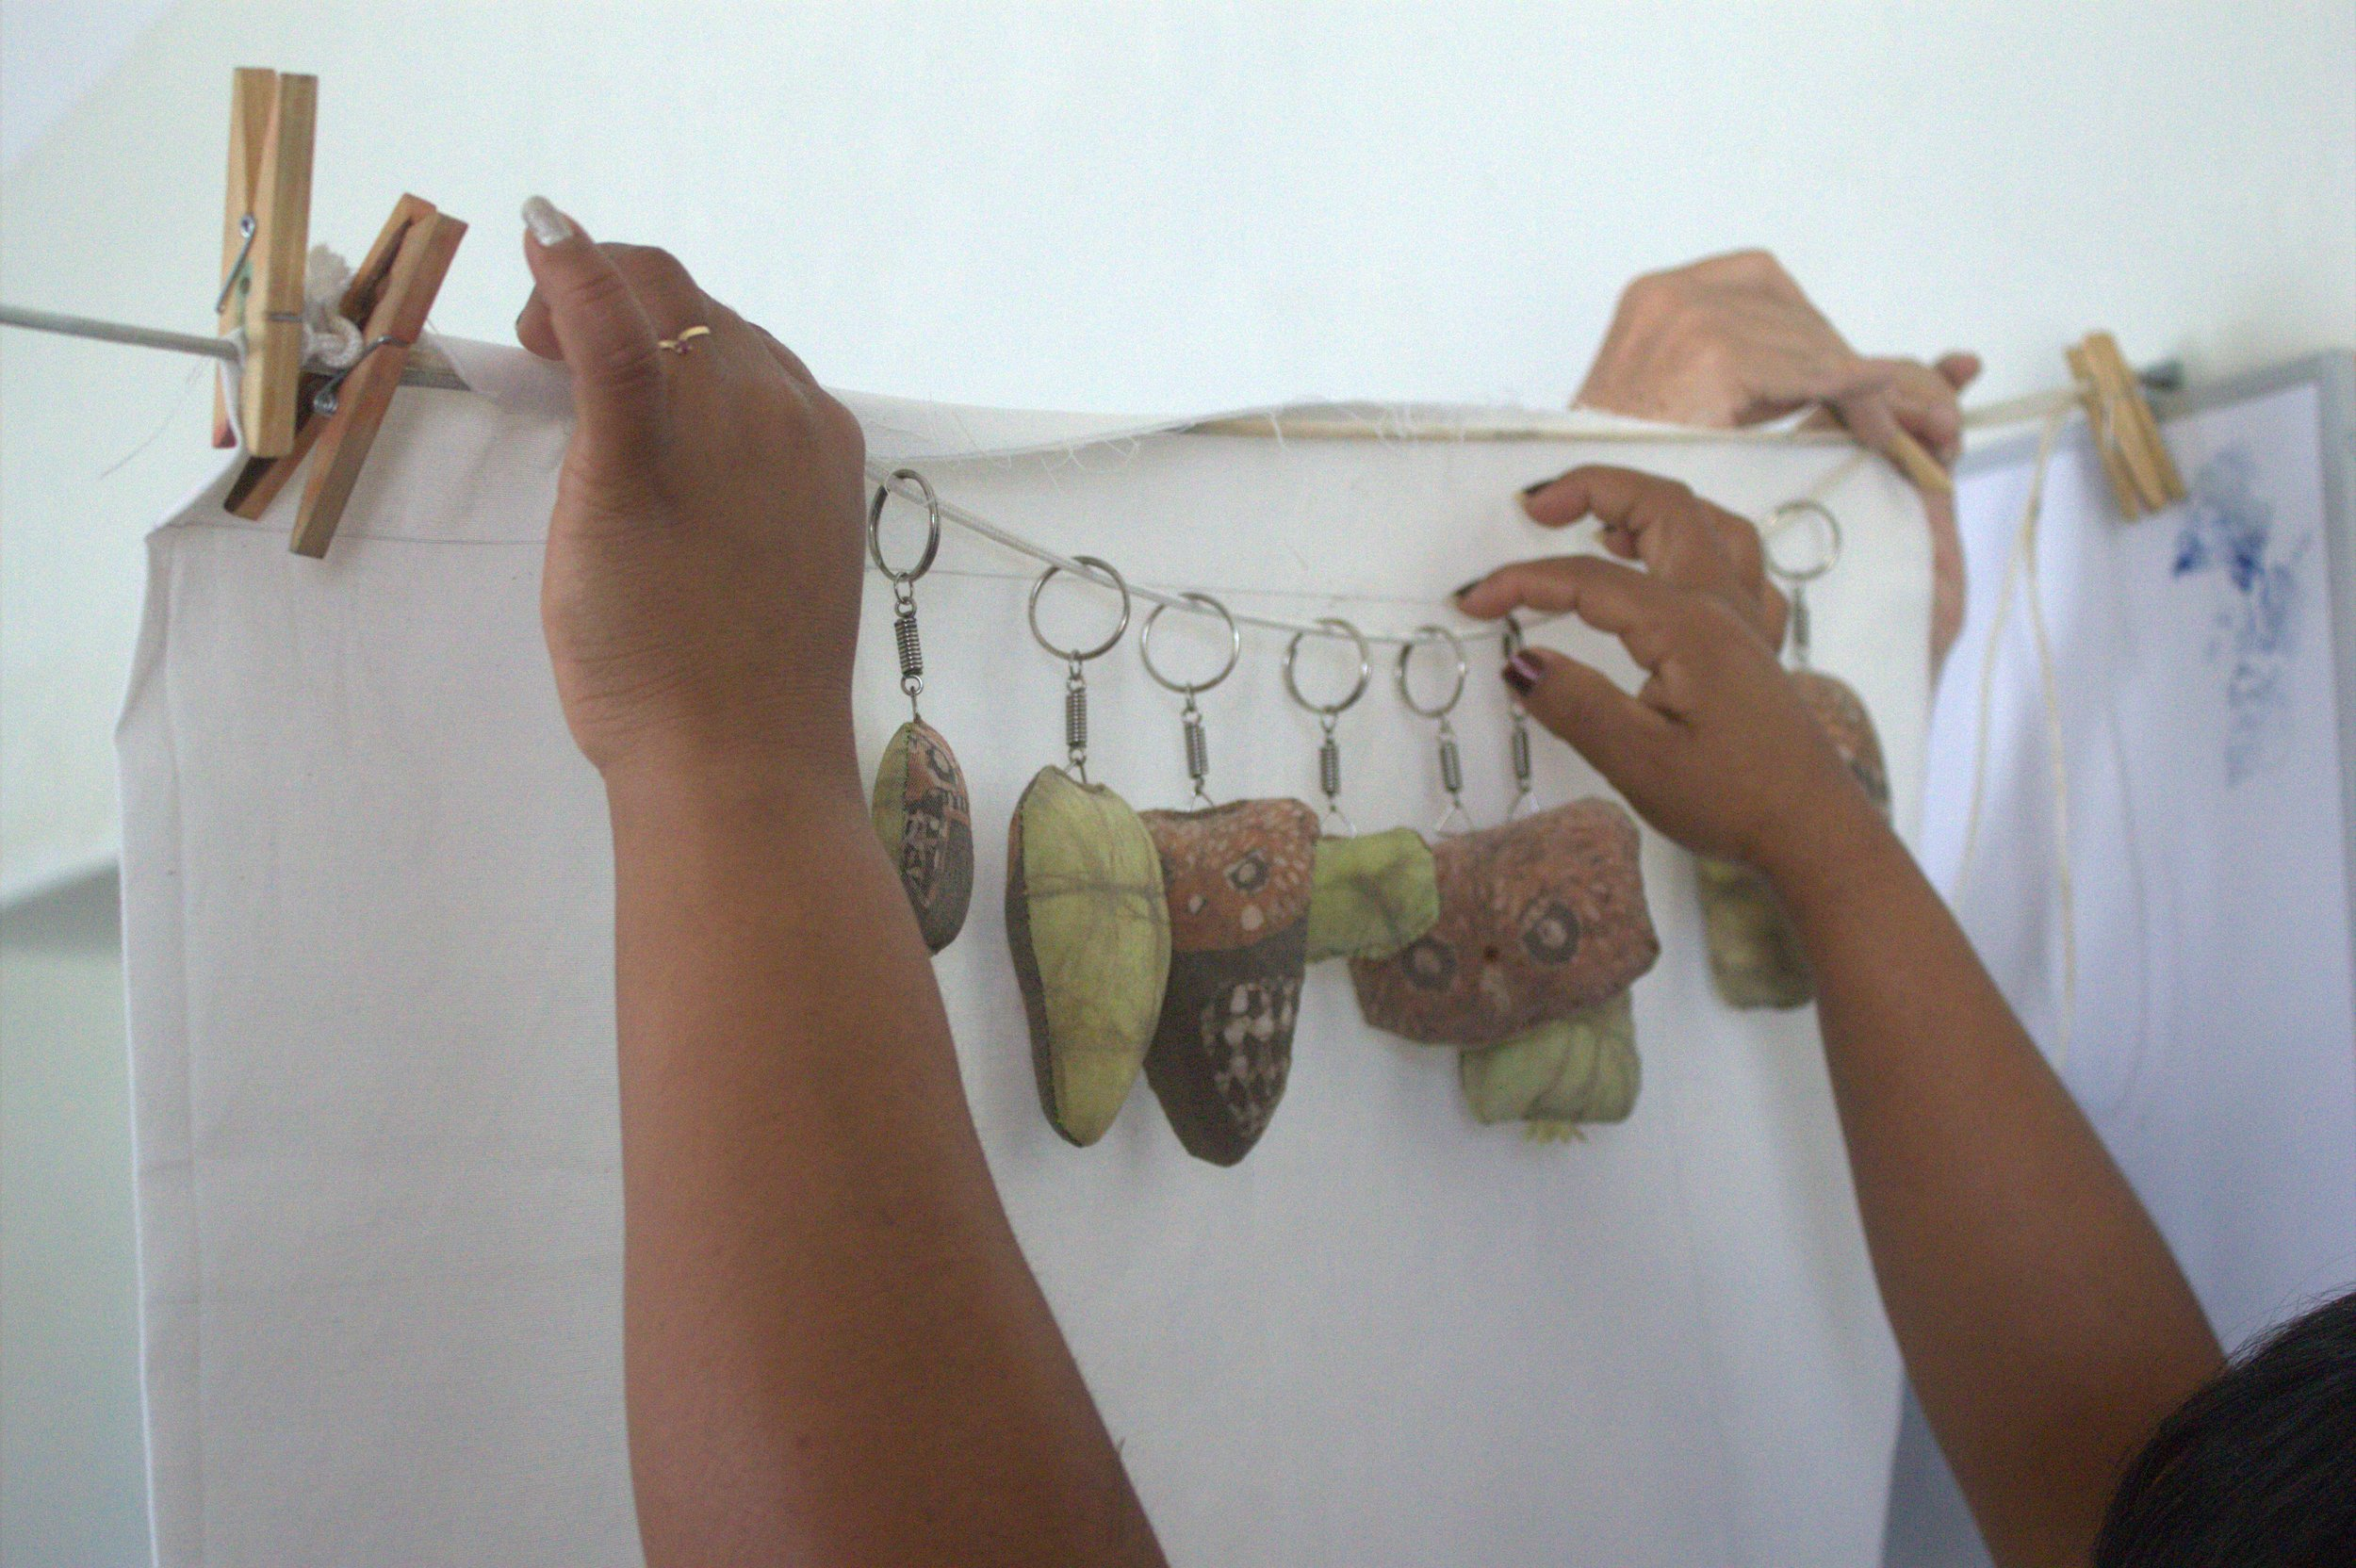 The Project    SPI is working with four communities, developing their existing craft skills, creating new products with them, and training them in business and marketing skills. In partnership with the National Service of Natural Protected Areas (SERNANP) in Lambayeque, we are increasing the opportunities for local communities to sell local goods inspired by their cultural and natural heritage so their businesses can be independent and sustainable.